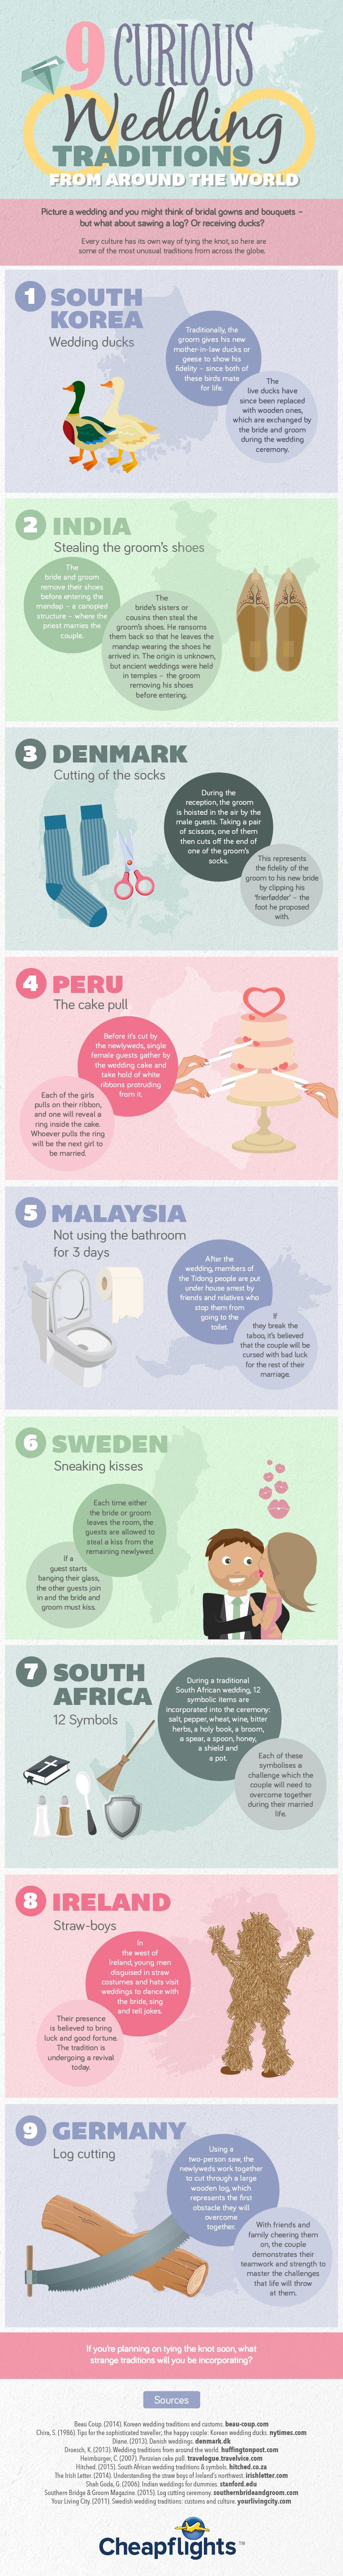 9 Curious Wedding Traditions From Around the World #Infographic #Travel #Wedding